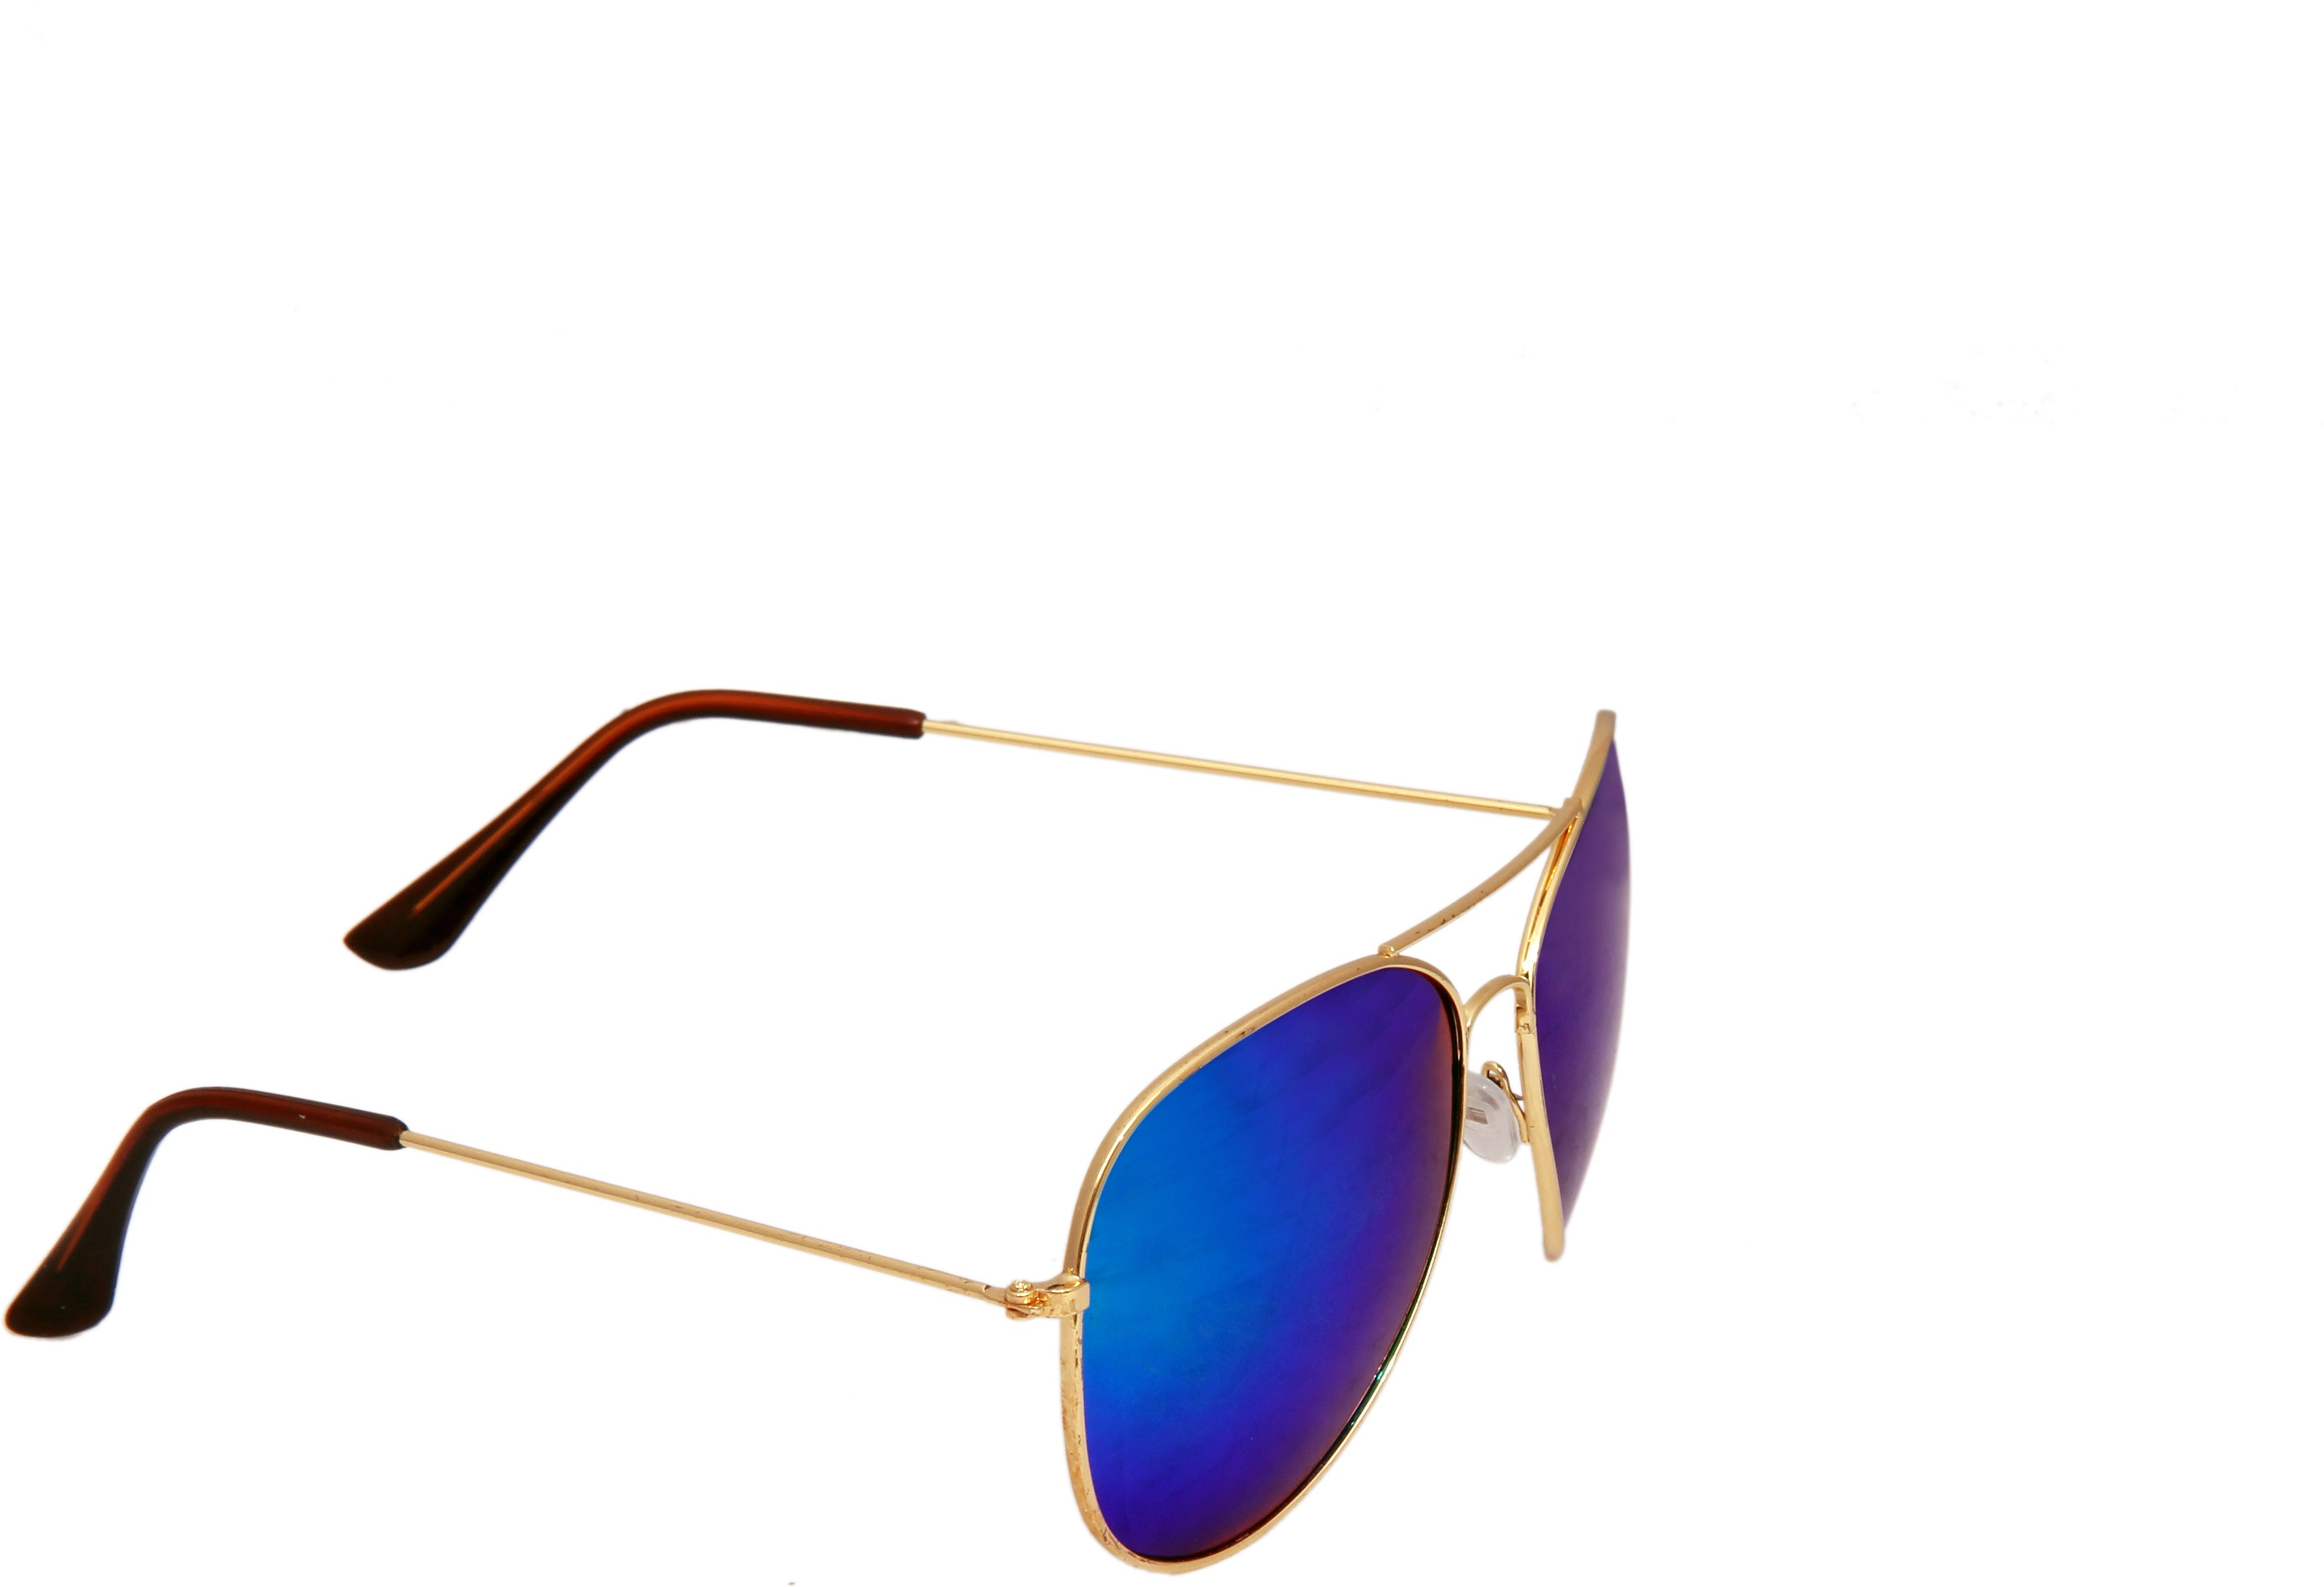 Deals - Delhi - Provogue, Verre... <br> Sunglasses<br> Category - sunglasses<br> Business - Flipkart.com